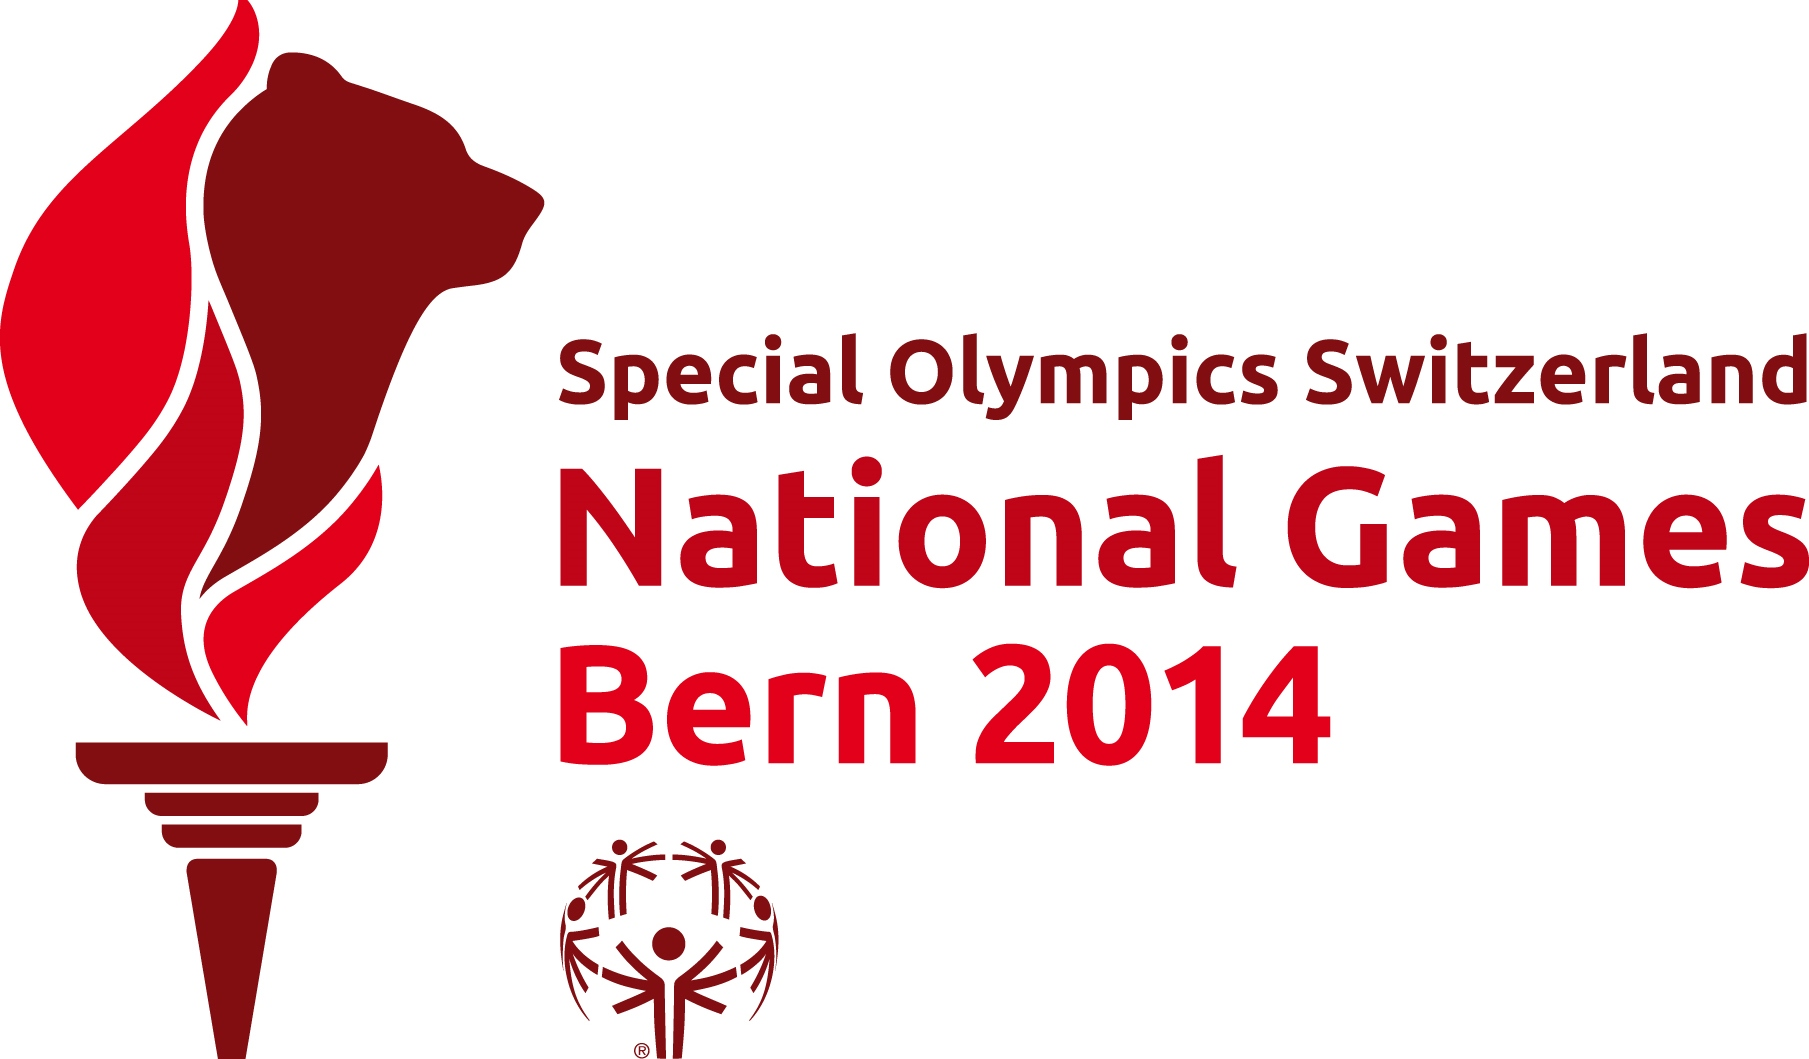 Special Olympics National Games 2014